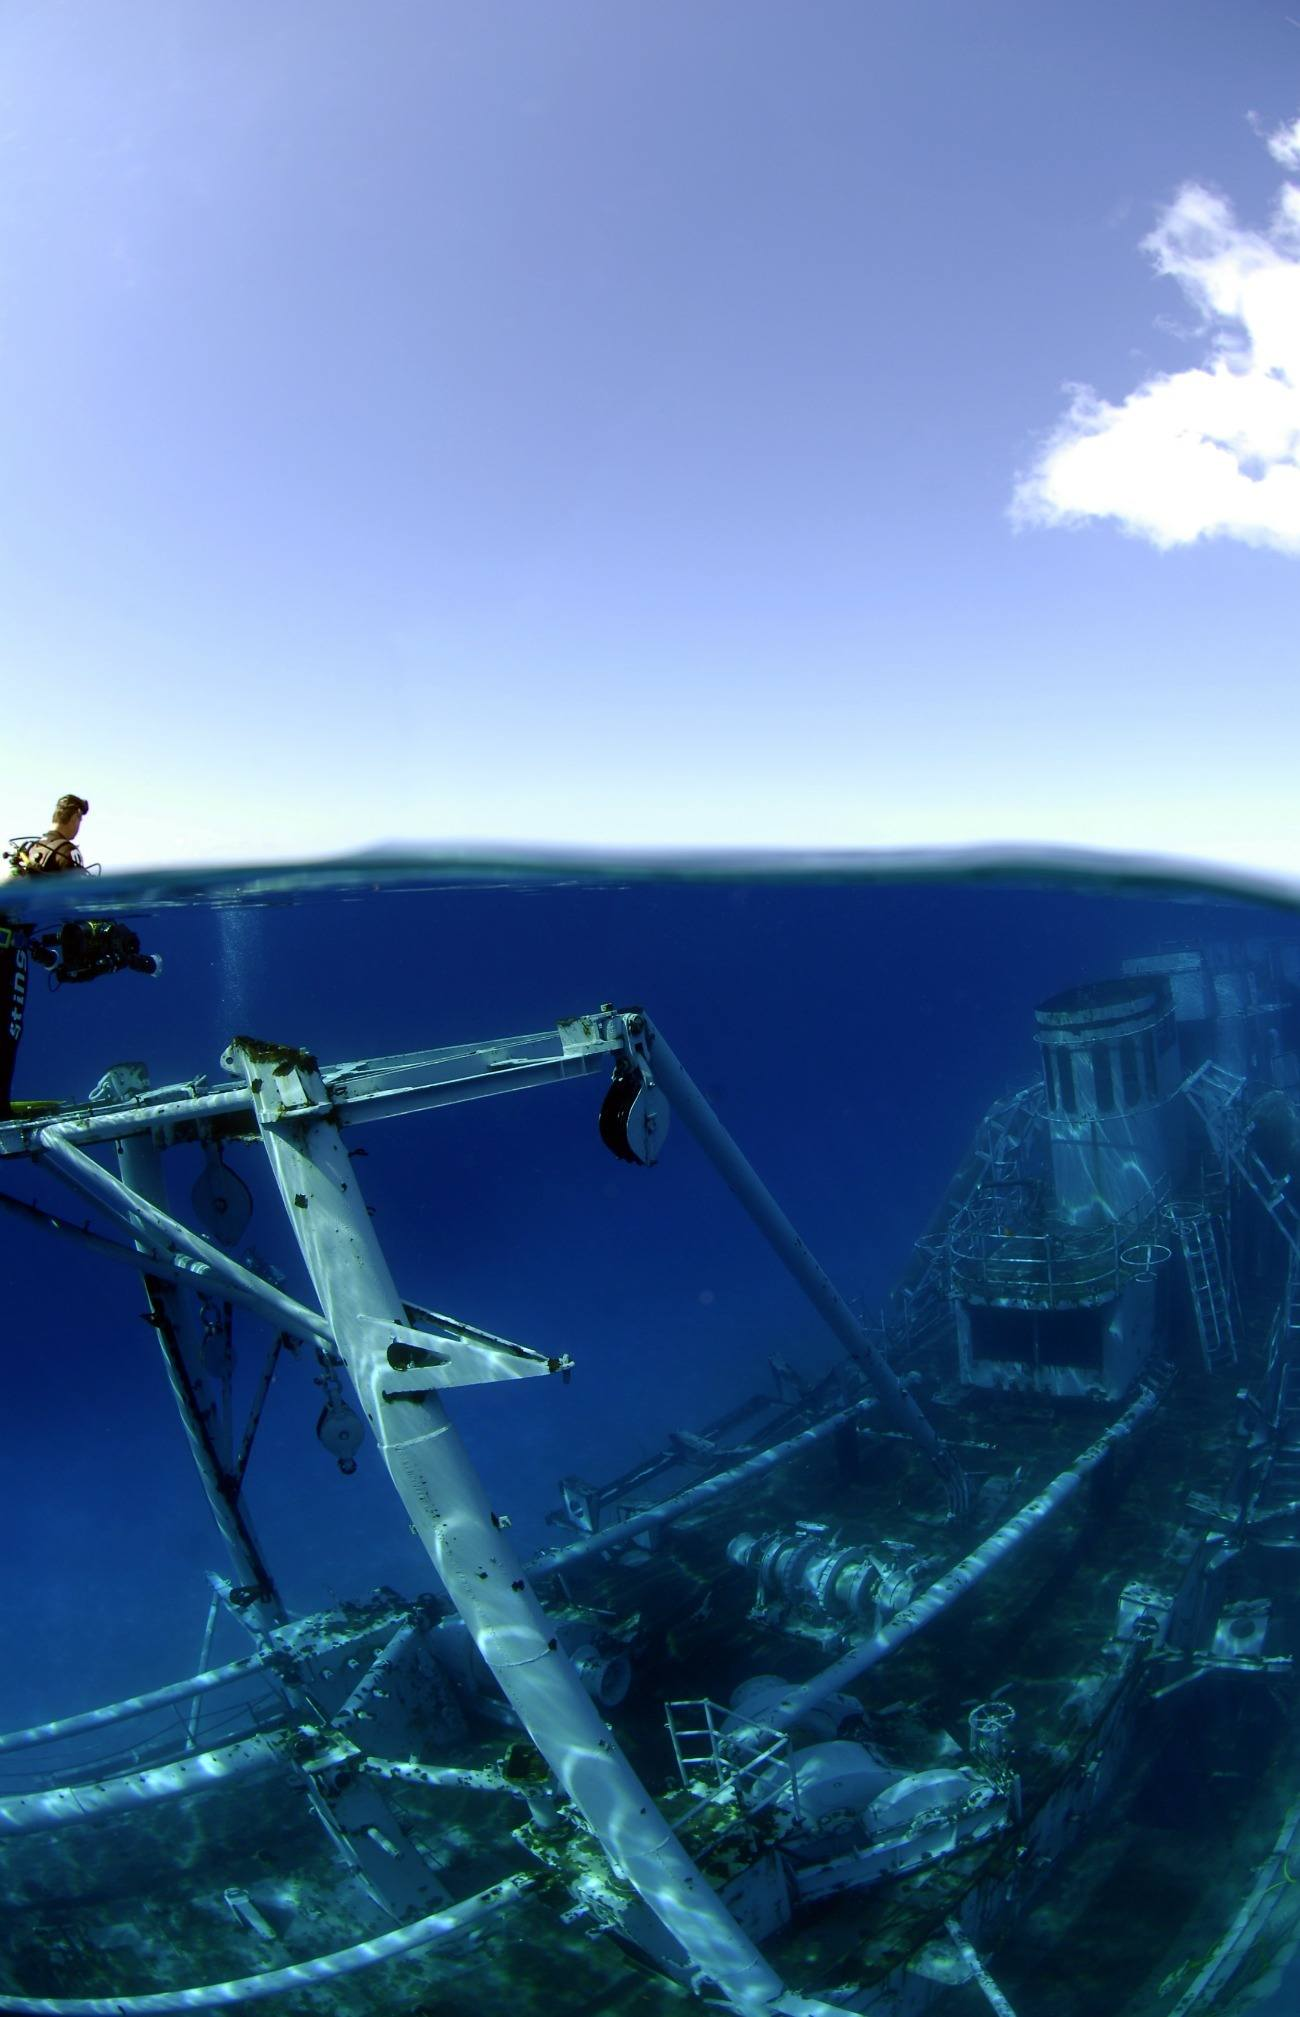 Snorkel or dive around the Kittiwake shipwreck in Grand Cayman.